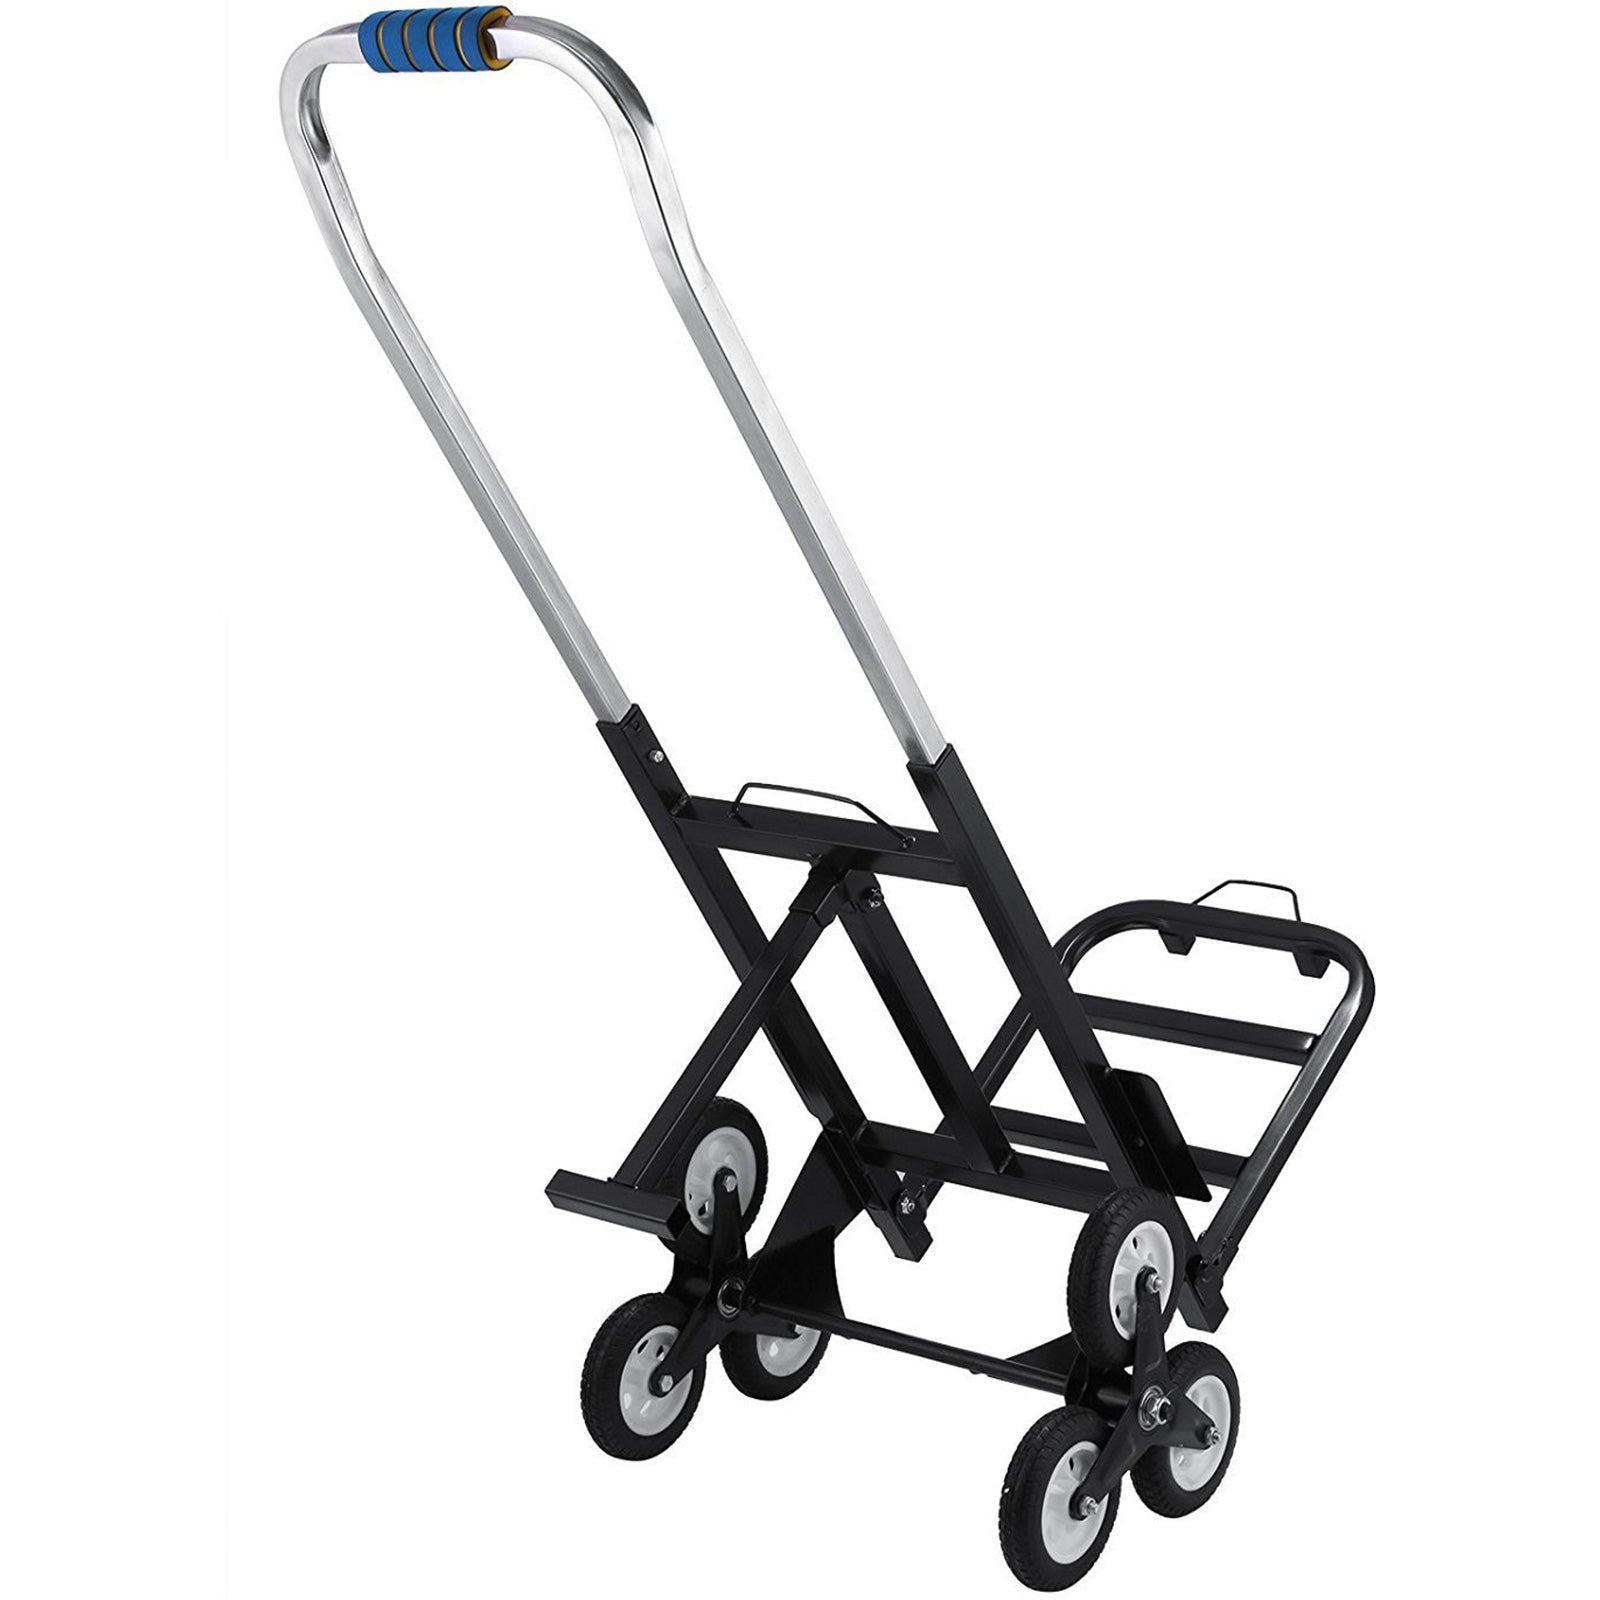 Portable Stair Climbing Folding Cart Climb All-terrain Up To 420lb Carbon Steel